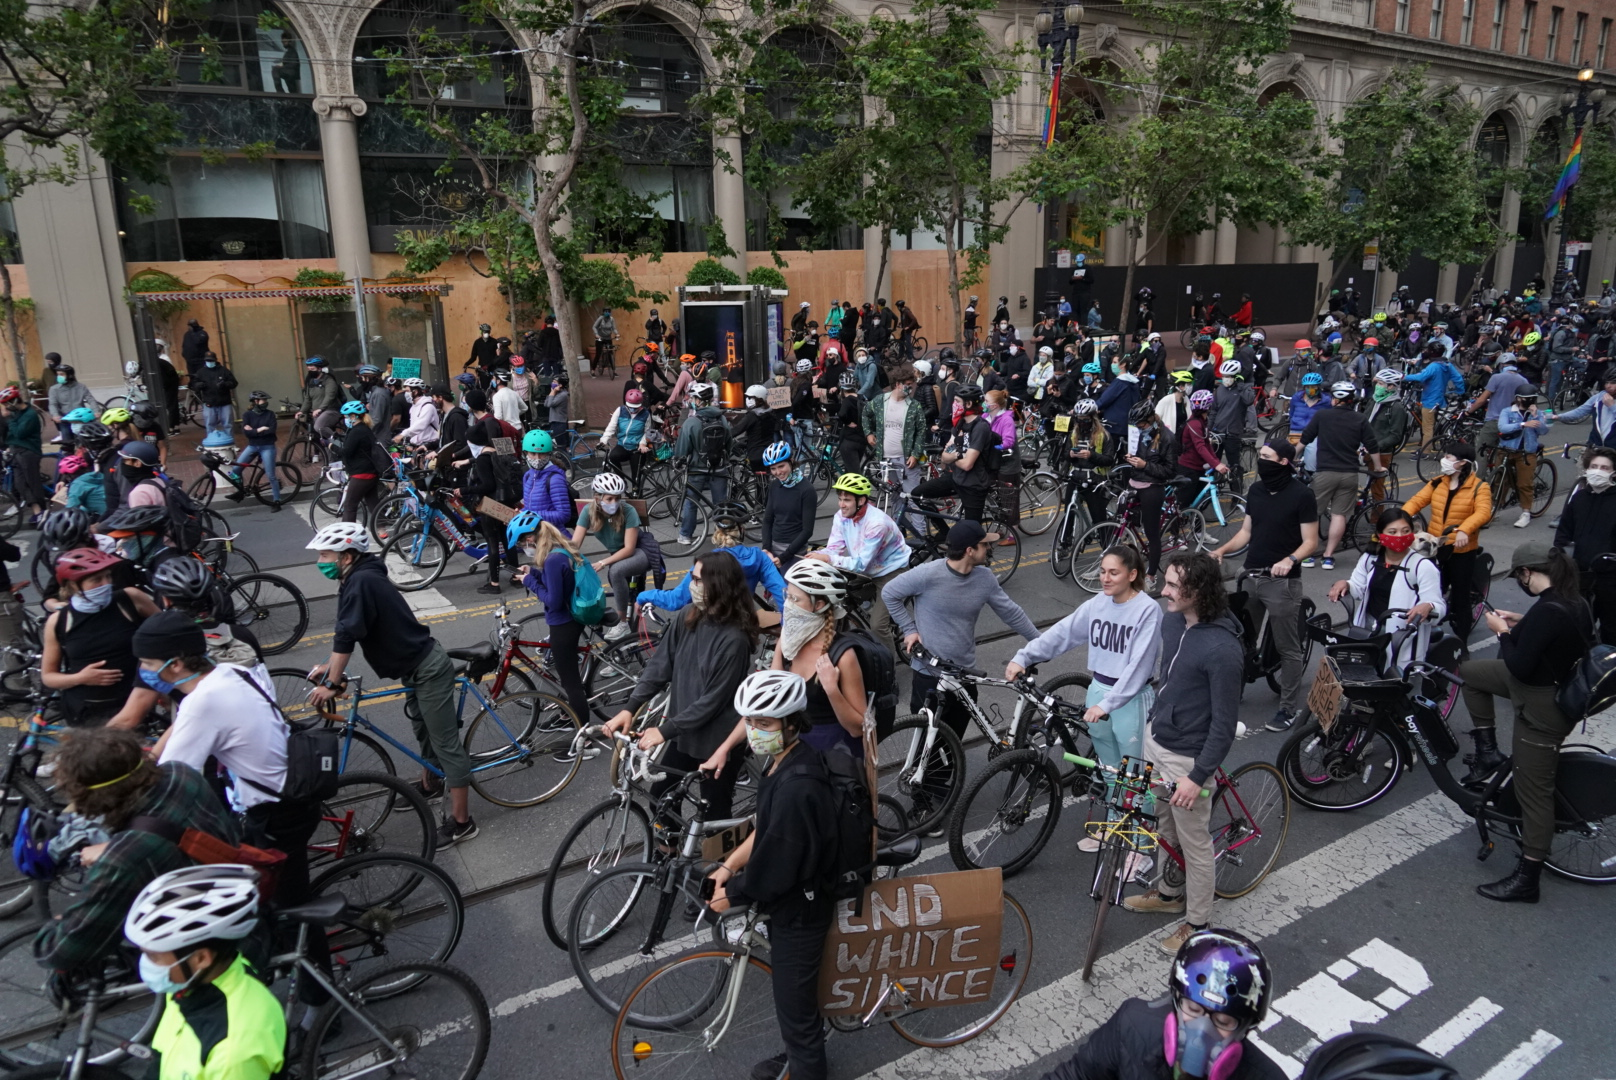 SF Critical Mass bike protest draws more than 1,000 against police brutality